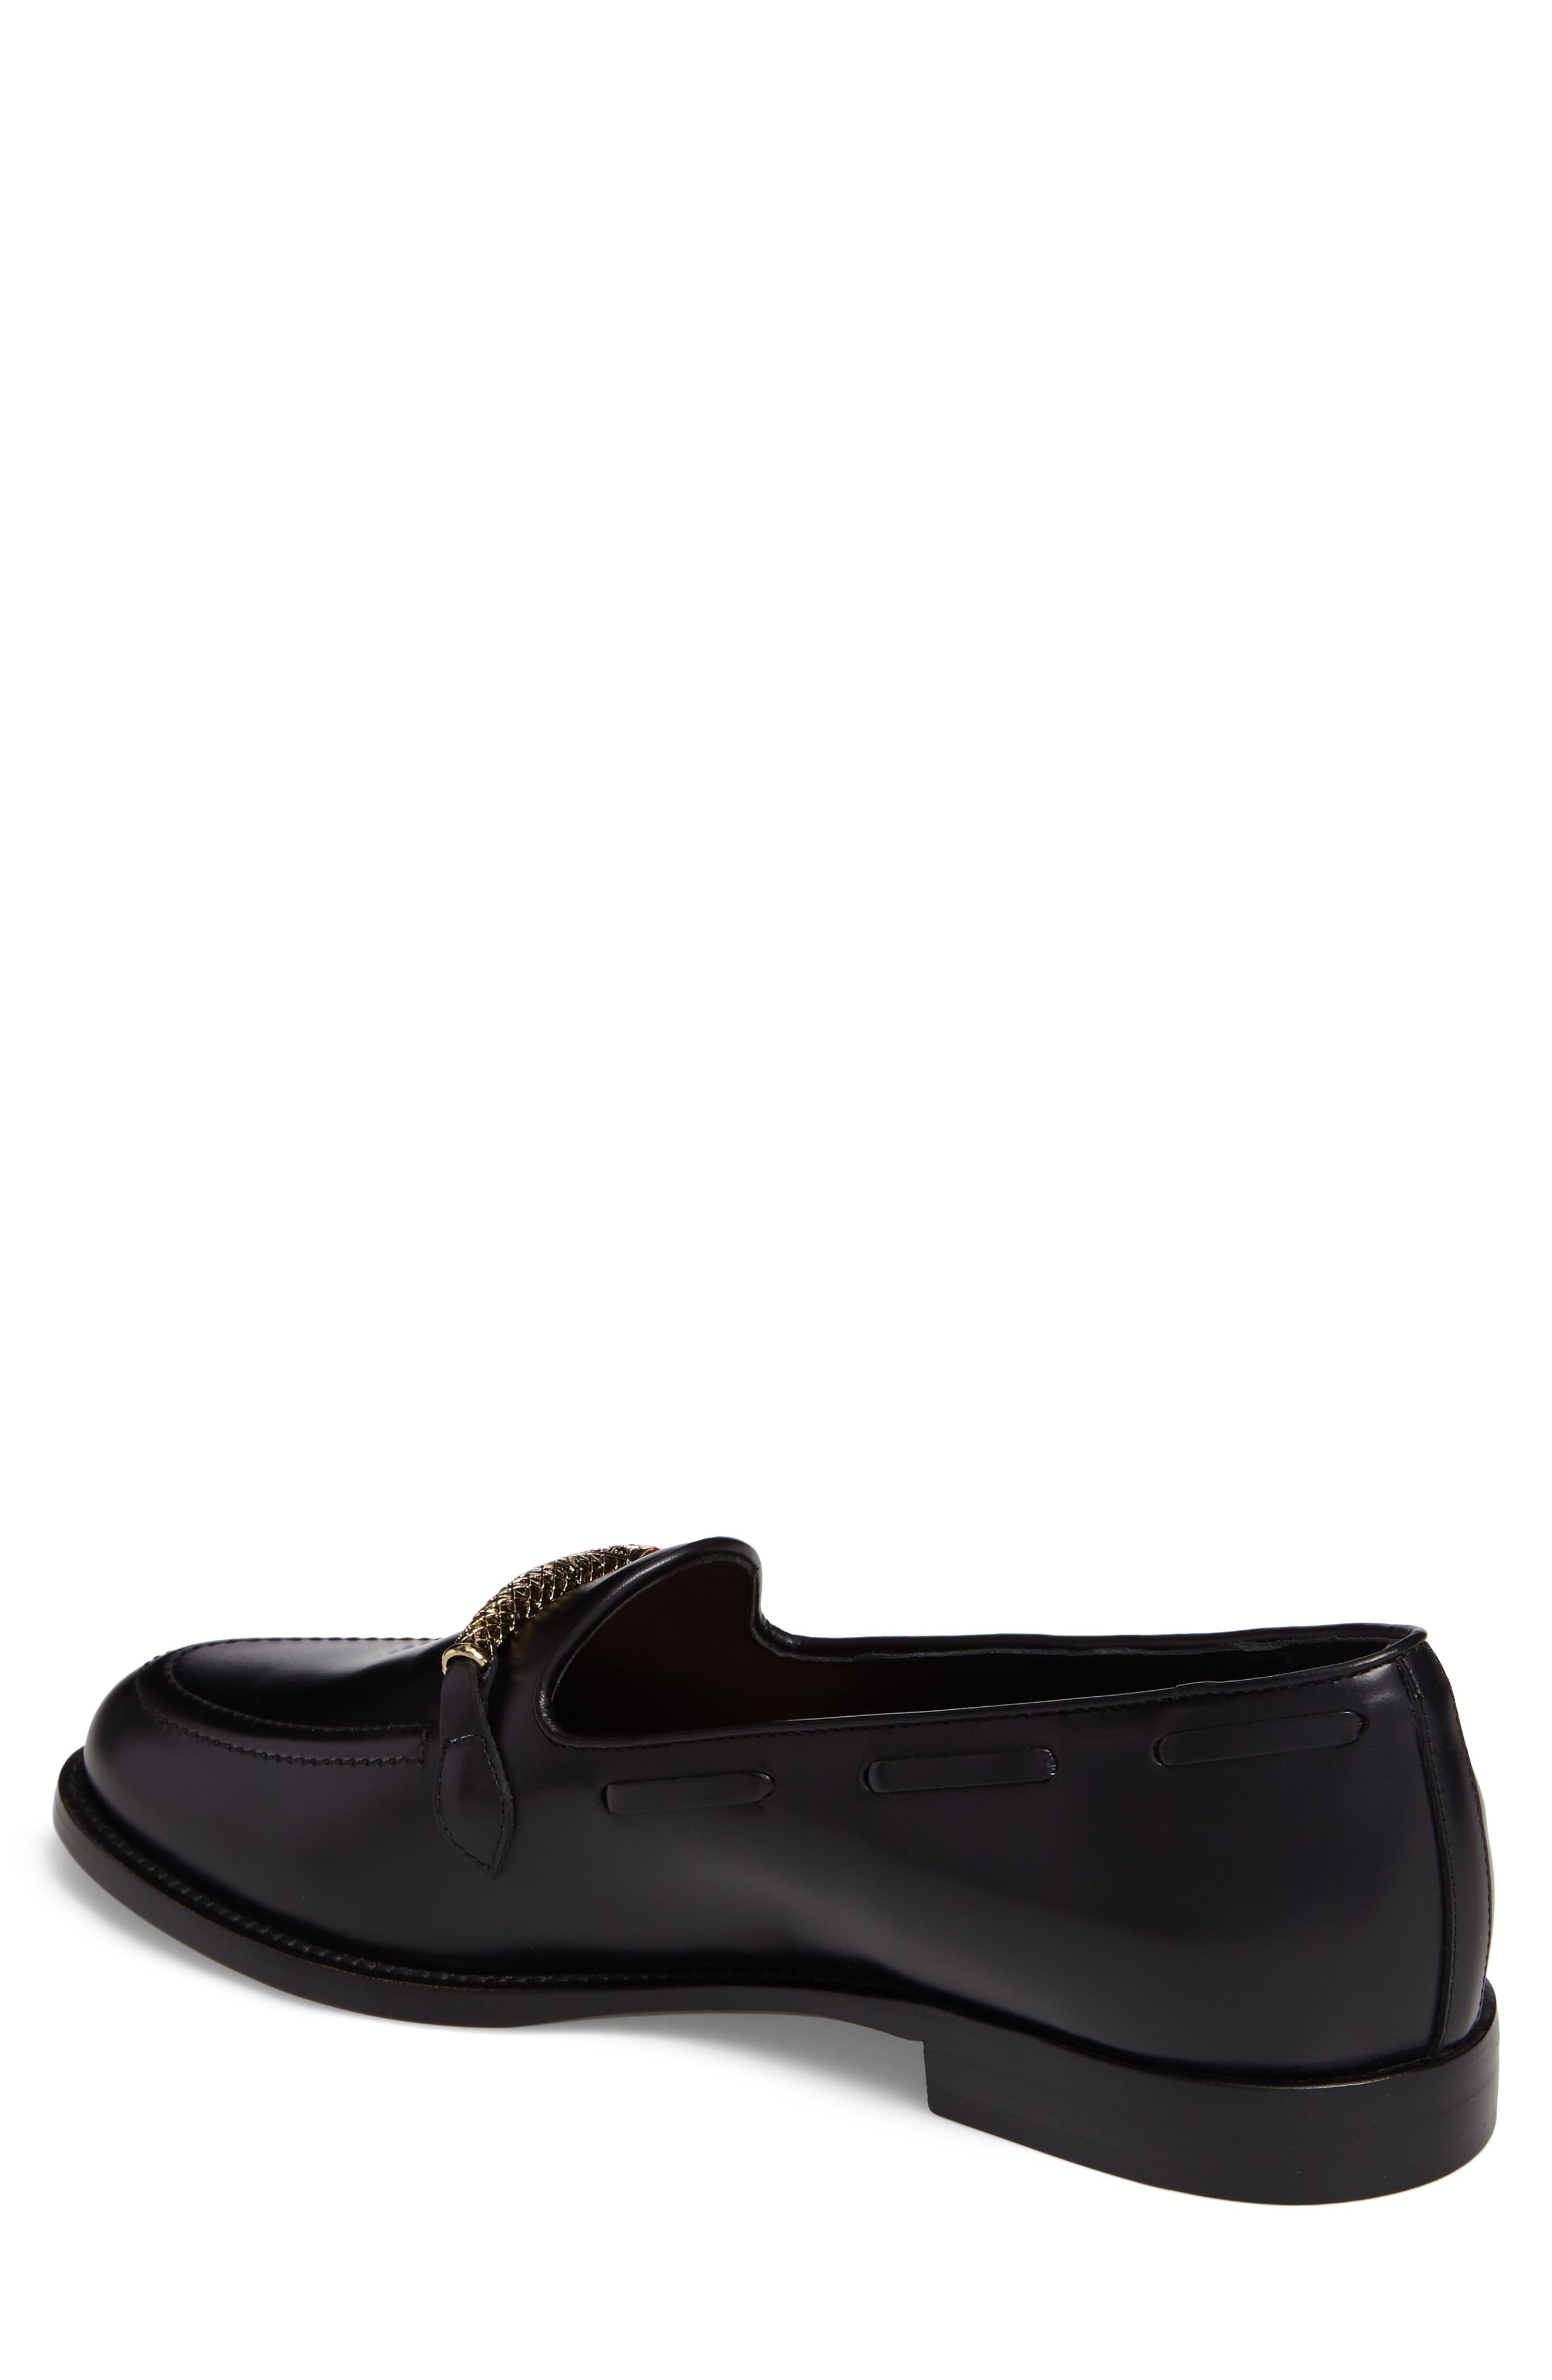 Serpent Bit Loafer,                             Alternate thumbnail 2, color,                             Nero Leather